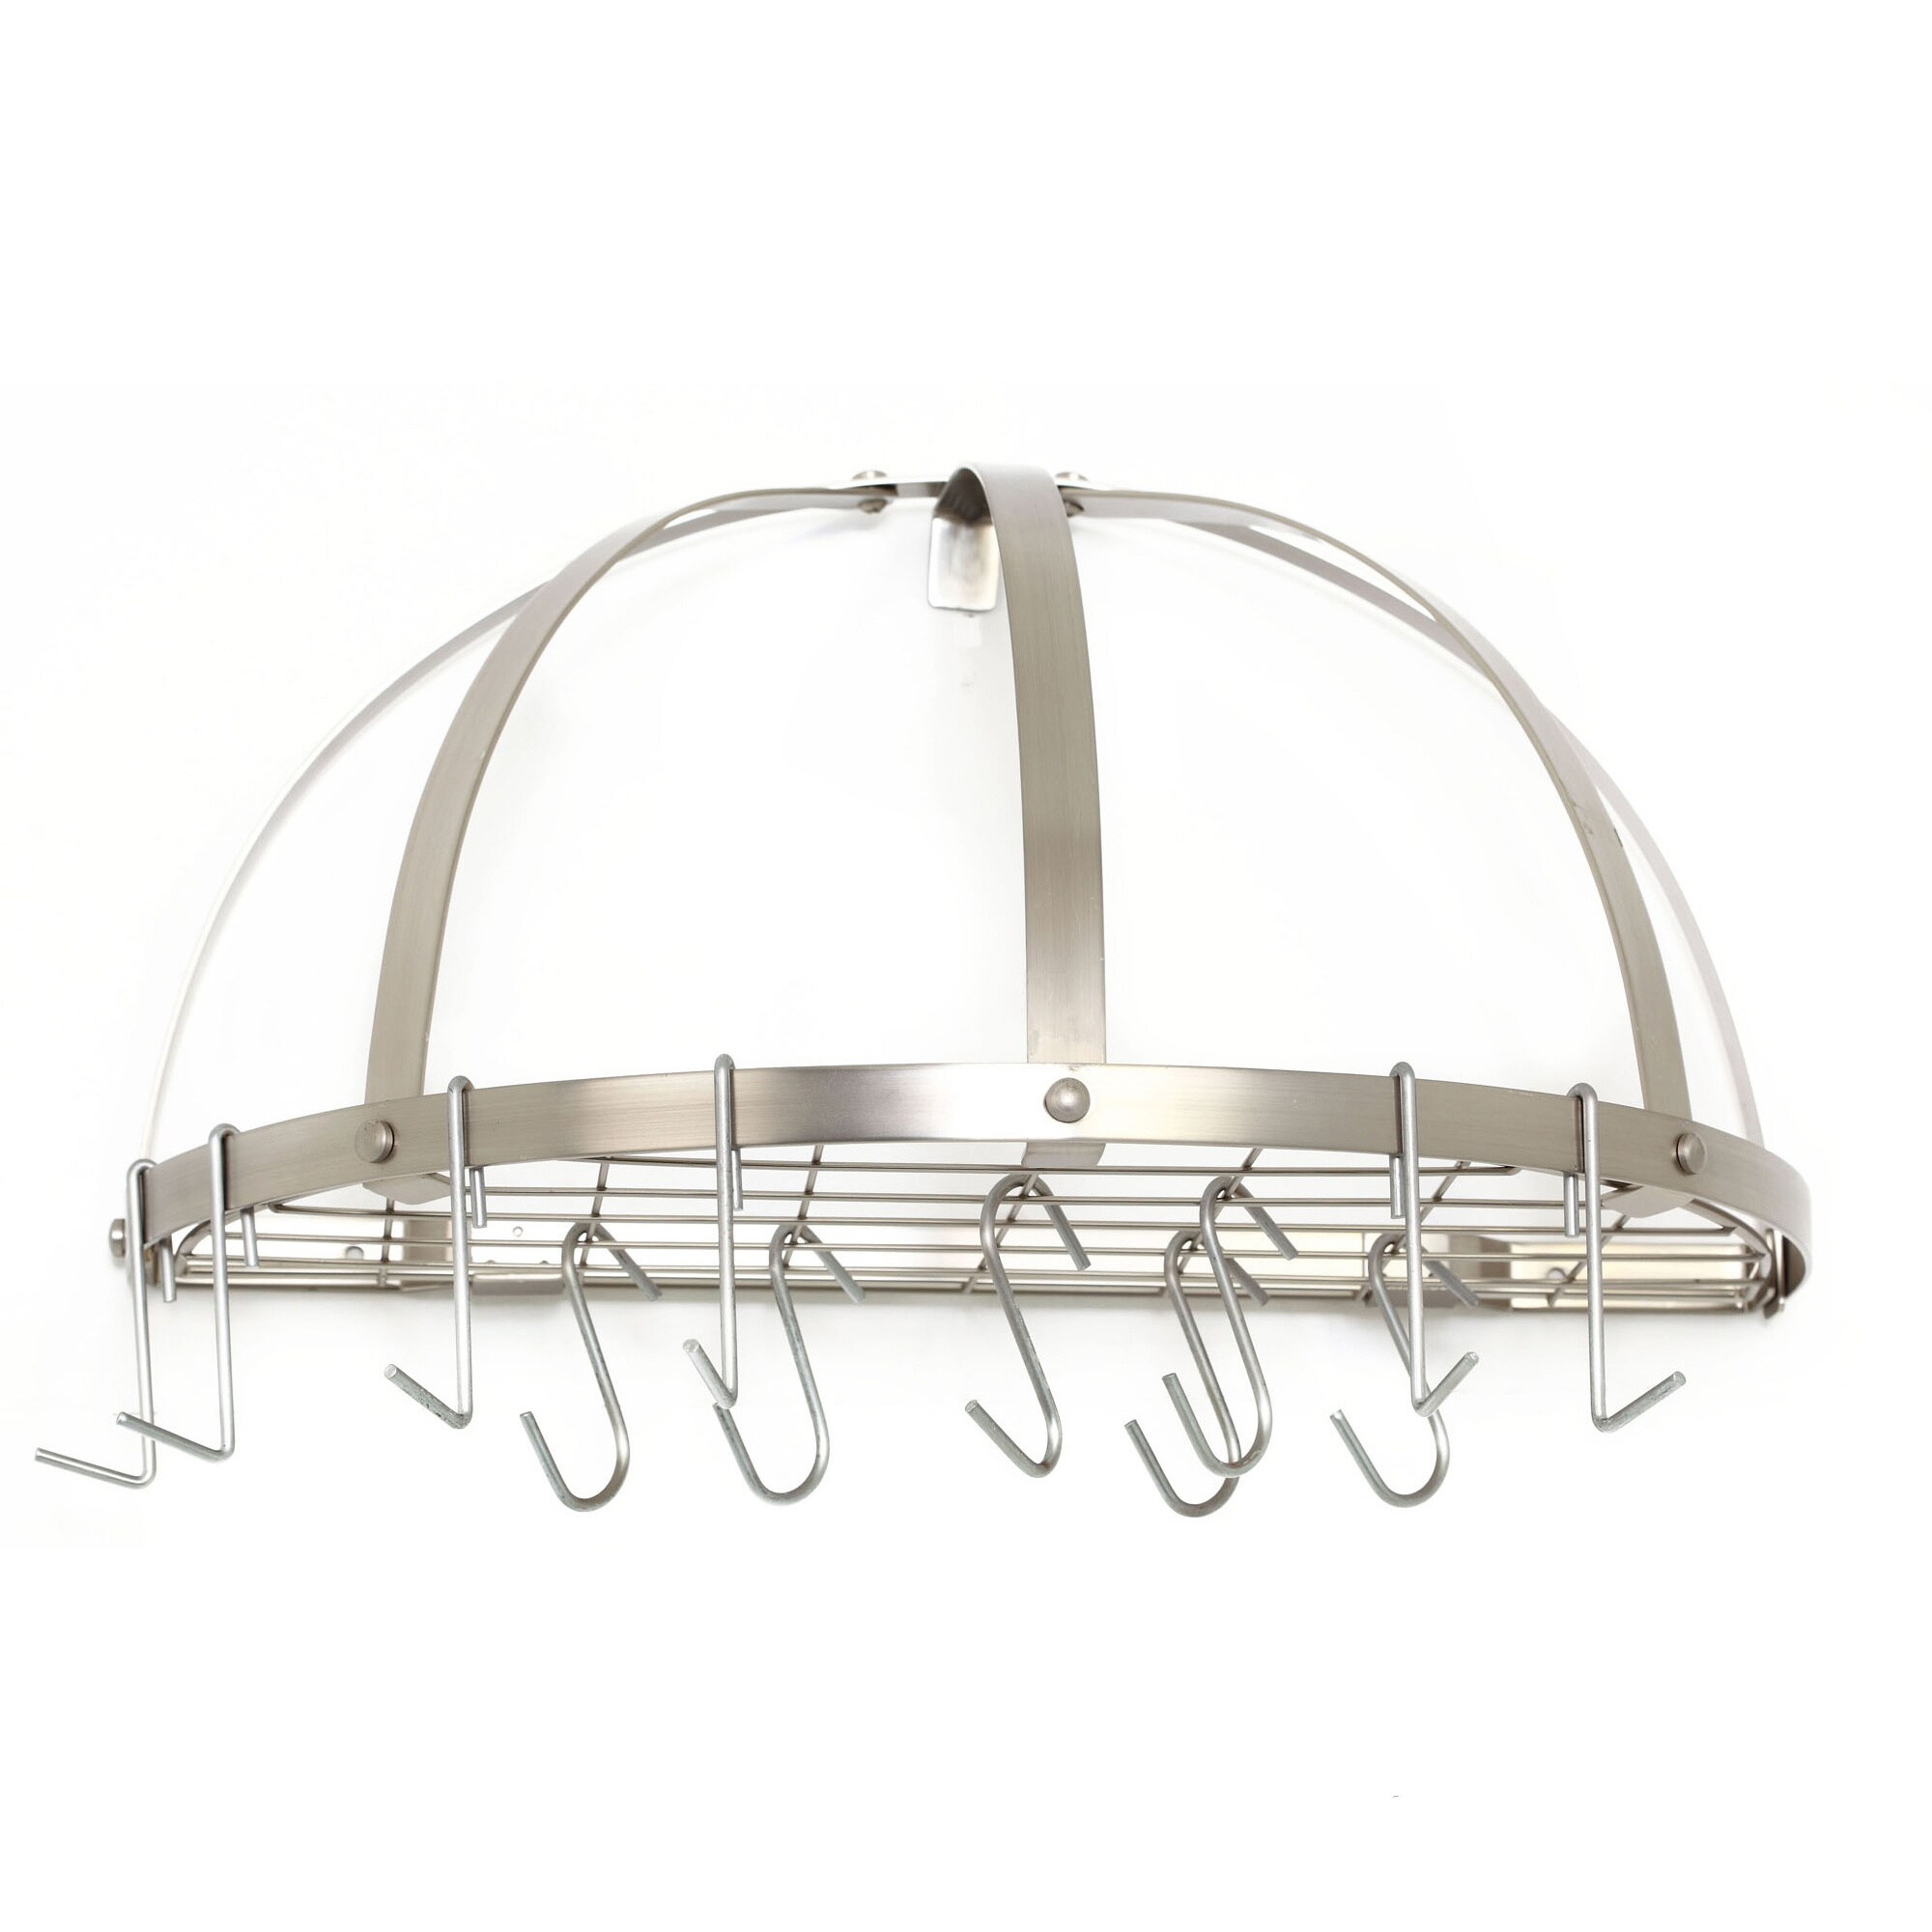 gourmet kitchen grid the pot hayneedle rack with lights rectangle hanging us elegant oksunglassesn